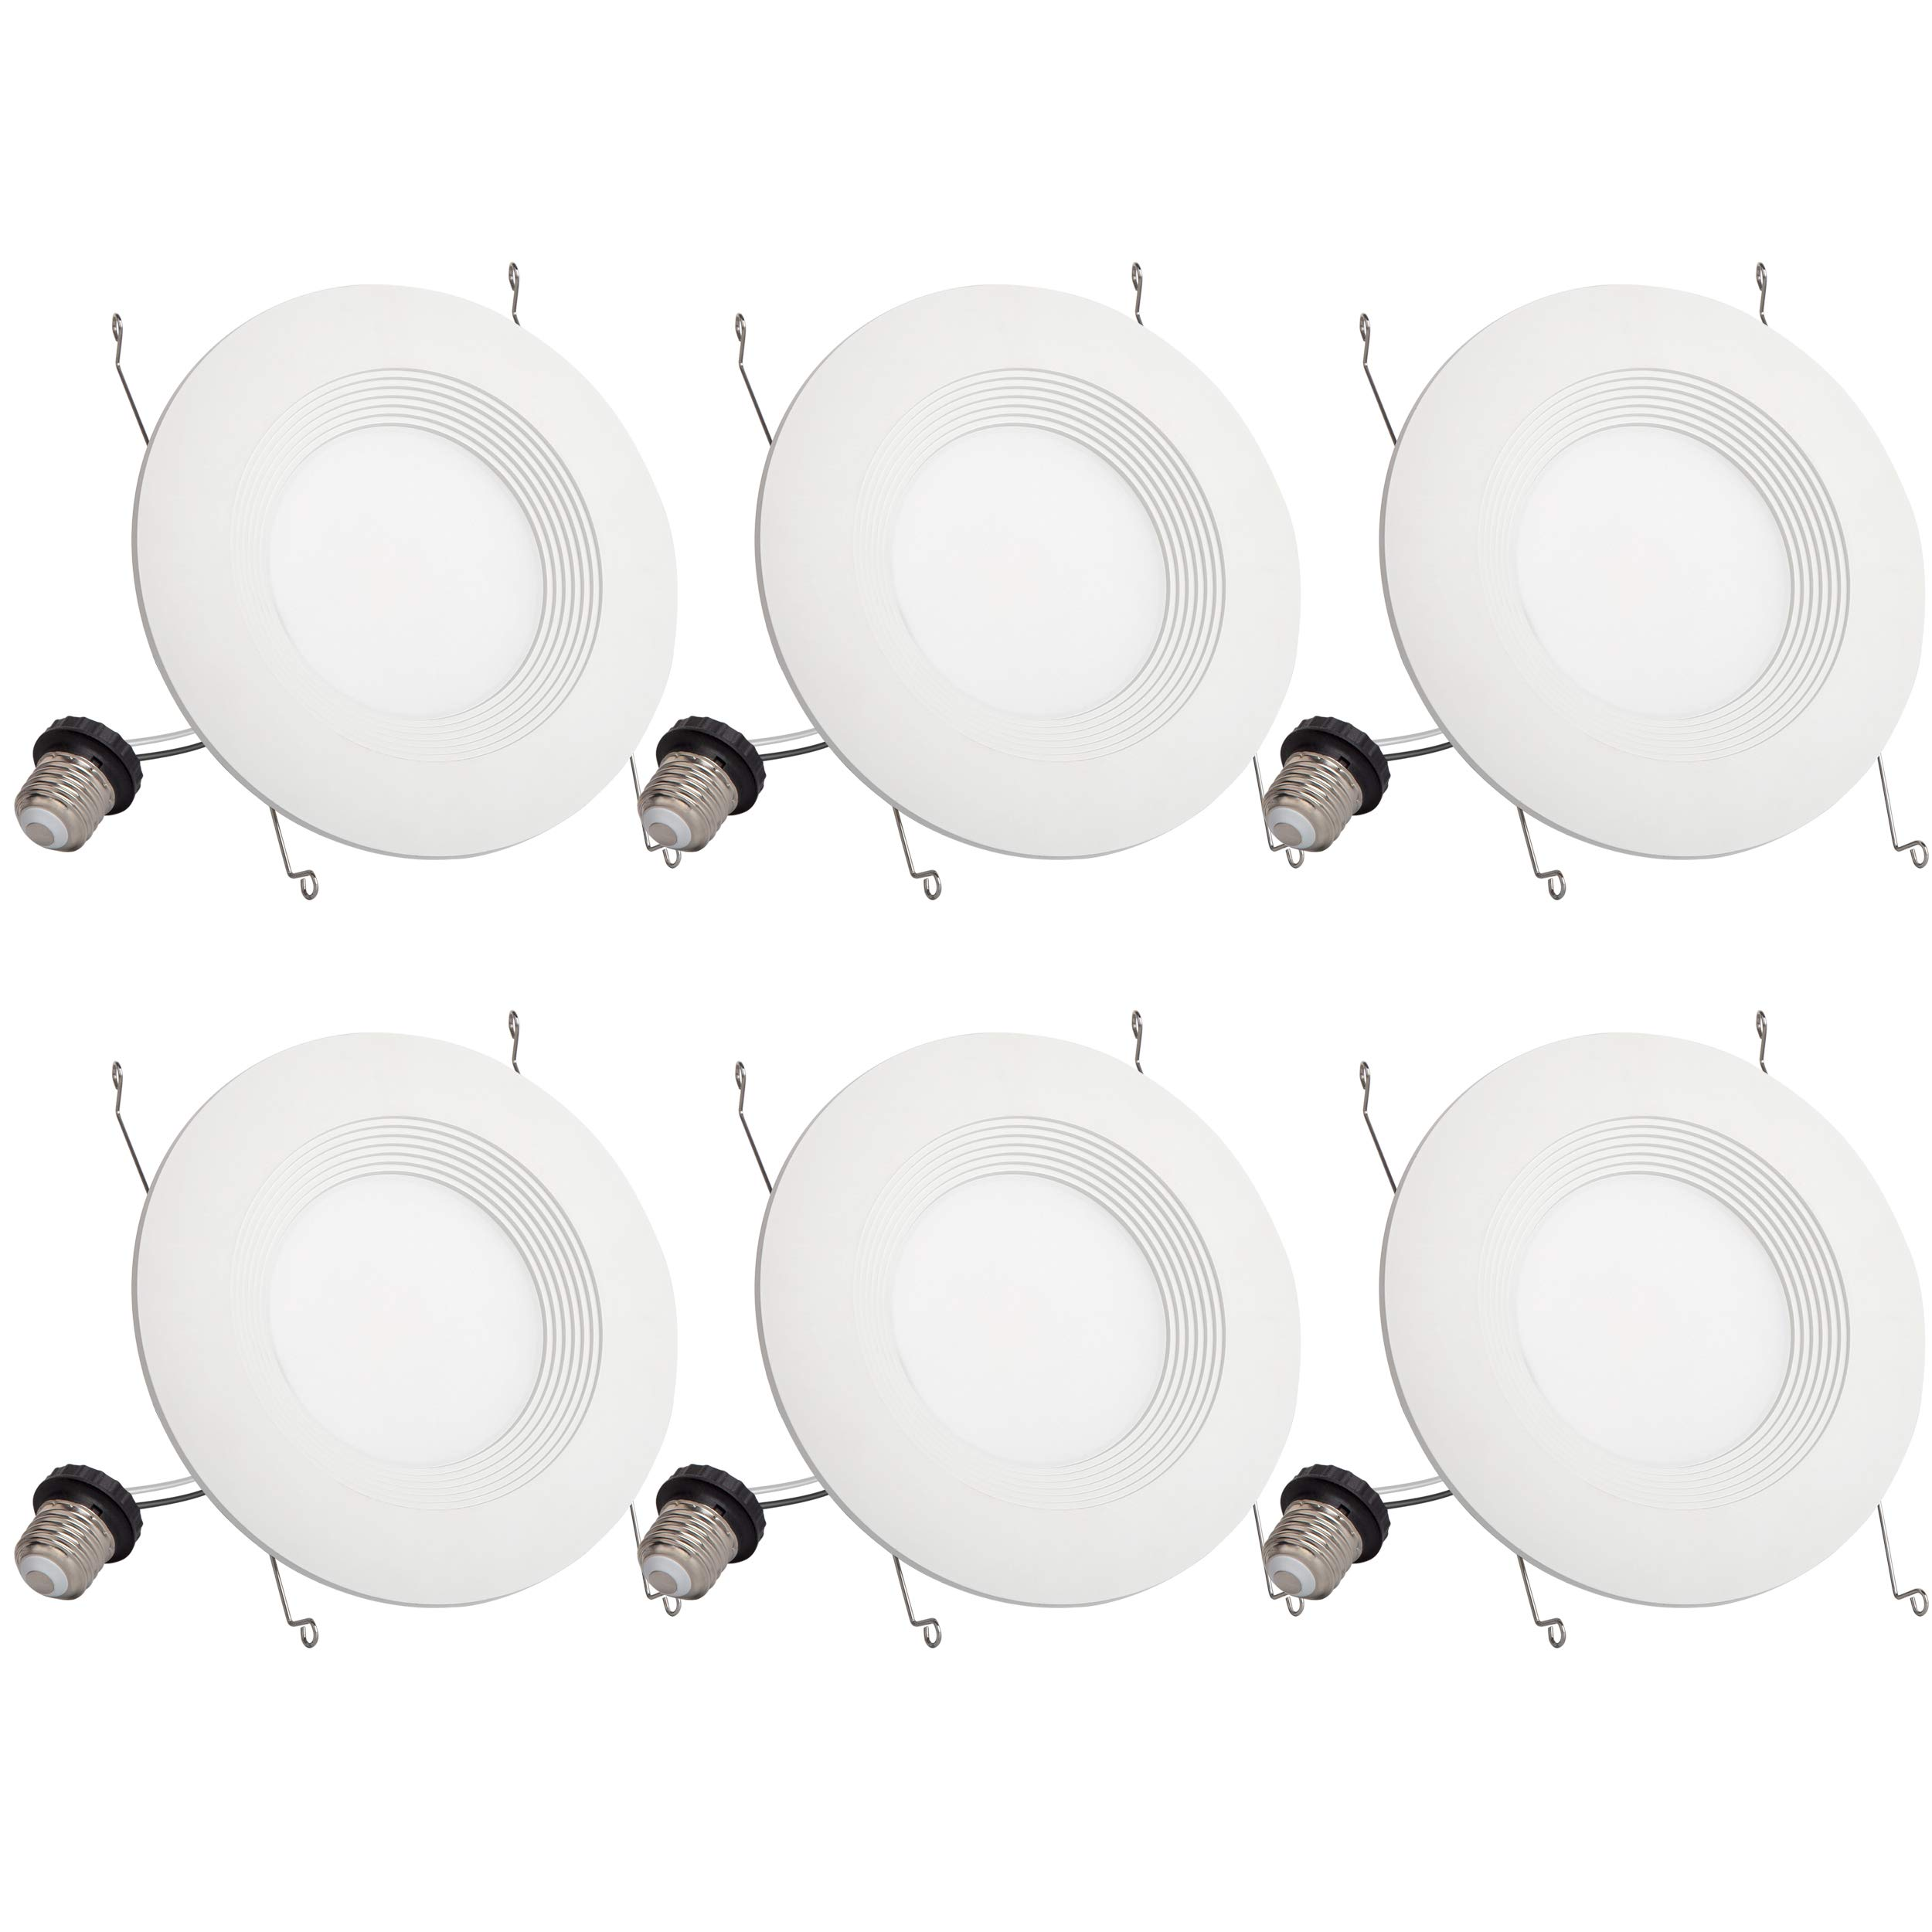 6 Pack 5/6 Inch 1000 Lumen Led Recessed Downlights Dimmable LED Downlight Retrofit Fit 5000K Daylight Ceiling Light 13W (120W Equivalent) UL and Energy Star Certified Quick Easy Can Install